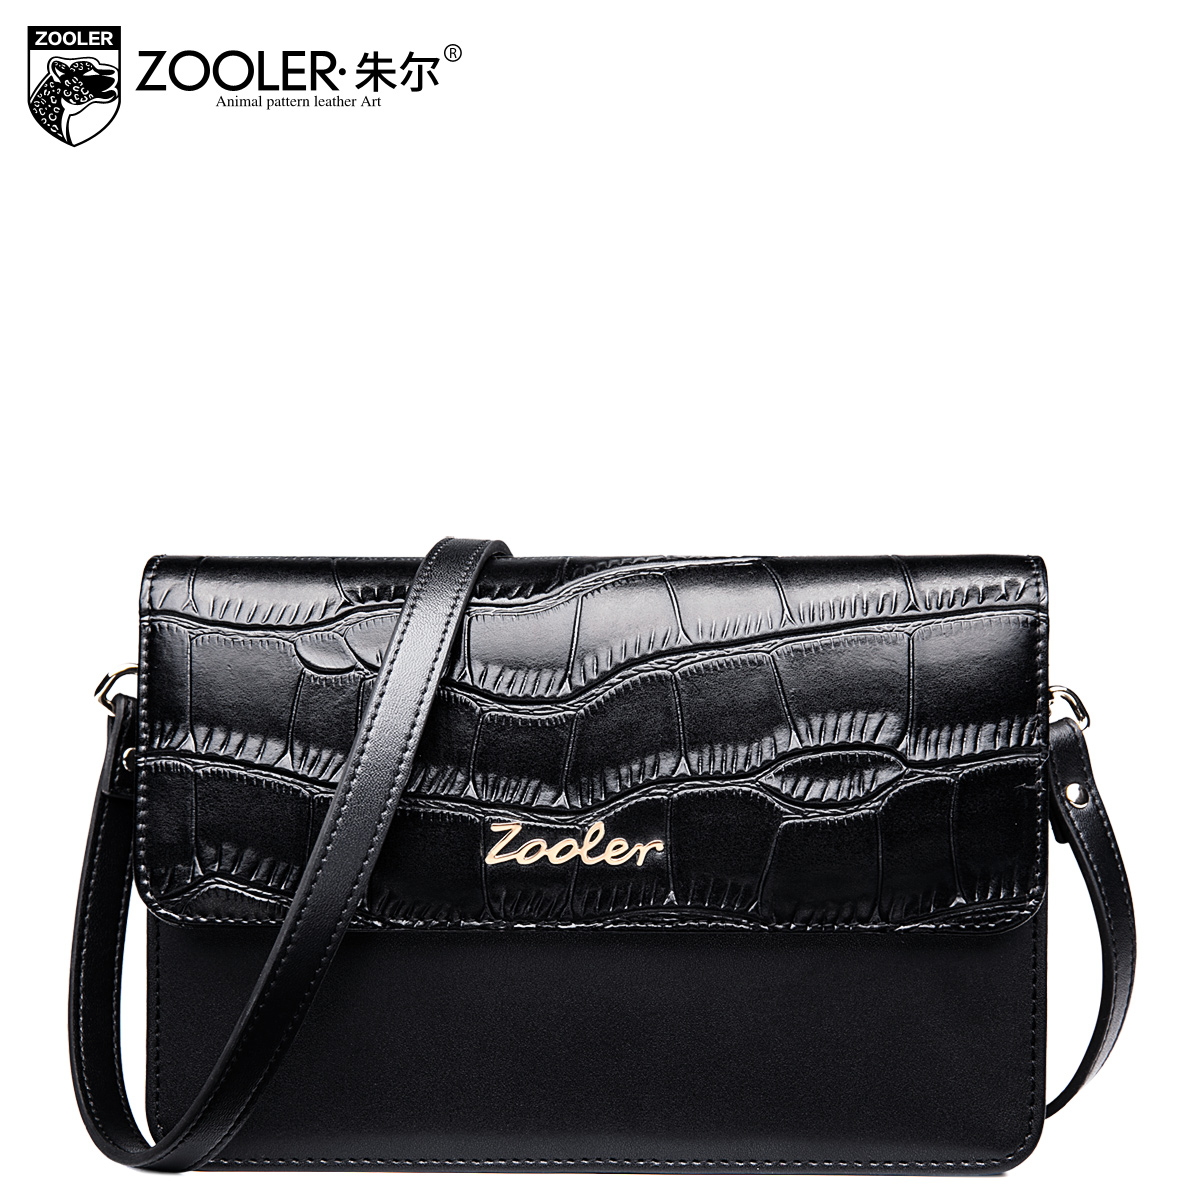 New arrival cowhide women messenger bags handbags women famous brands small multifunctional clutch fashion female shoulder bag<br><br>Aliexpress